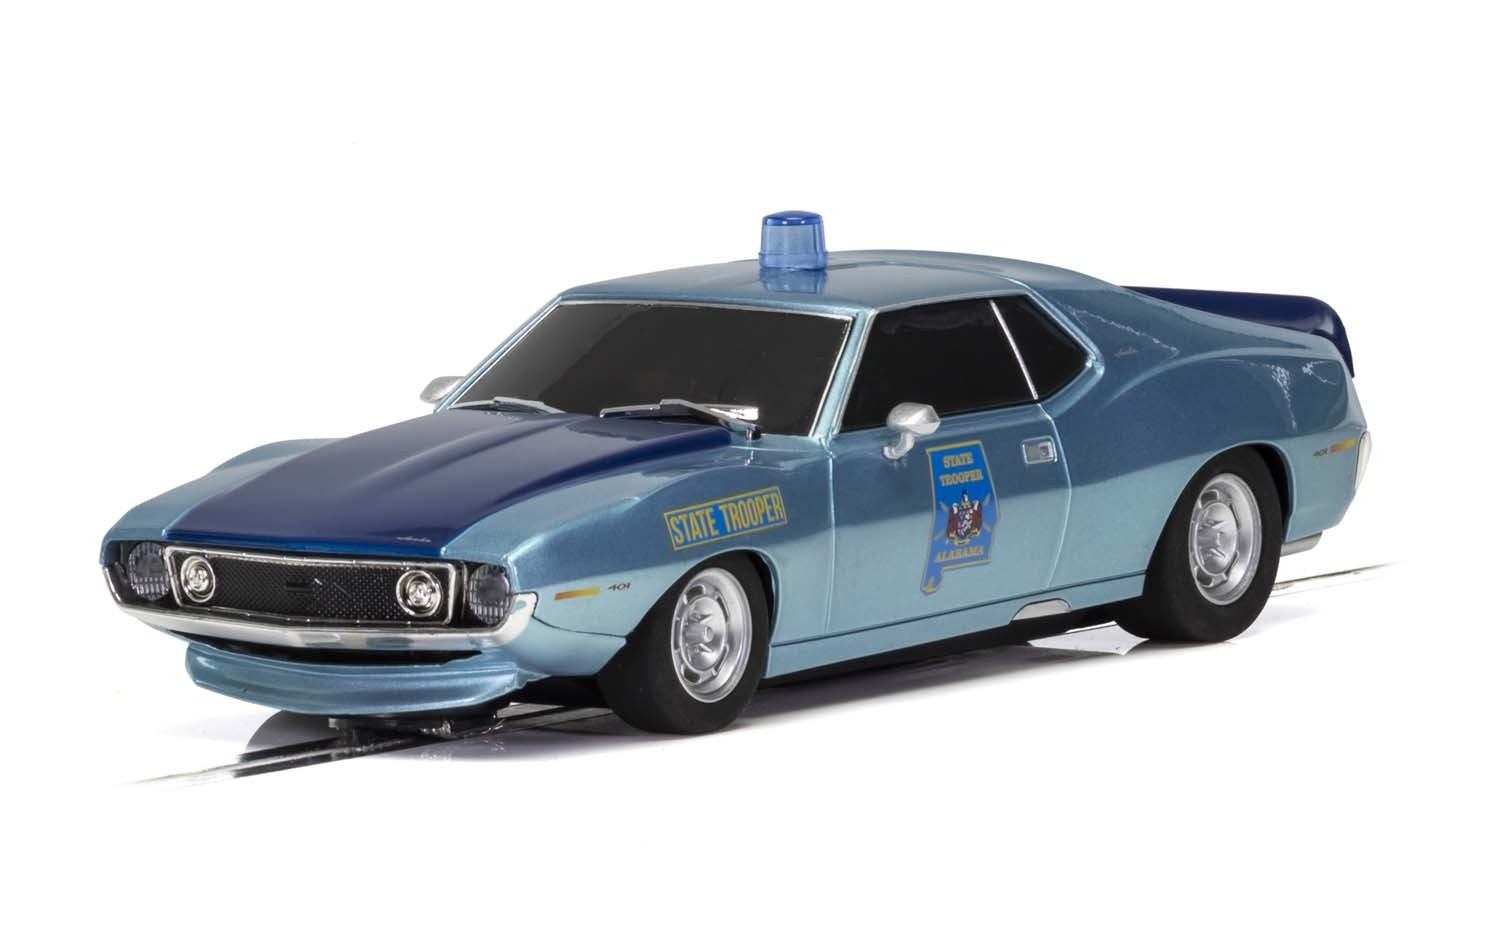 AMC Javelin Alabama State Trooper